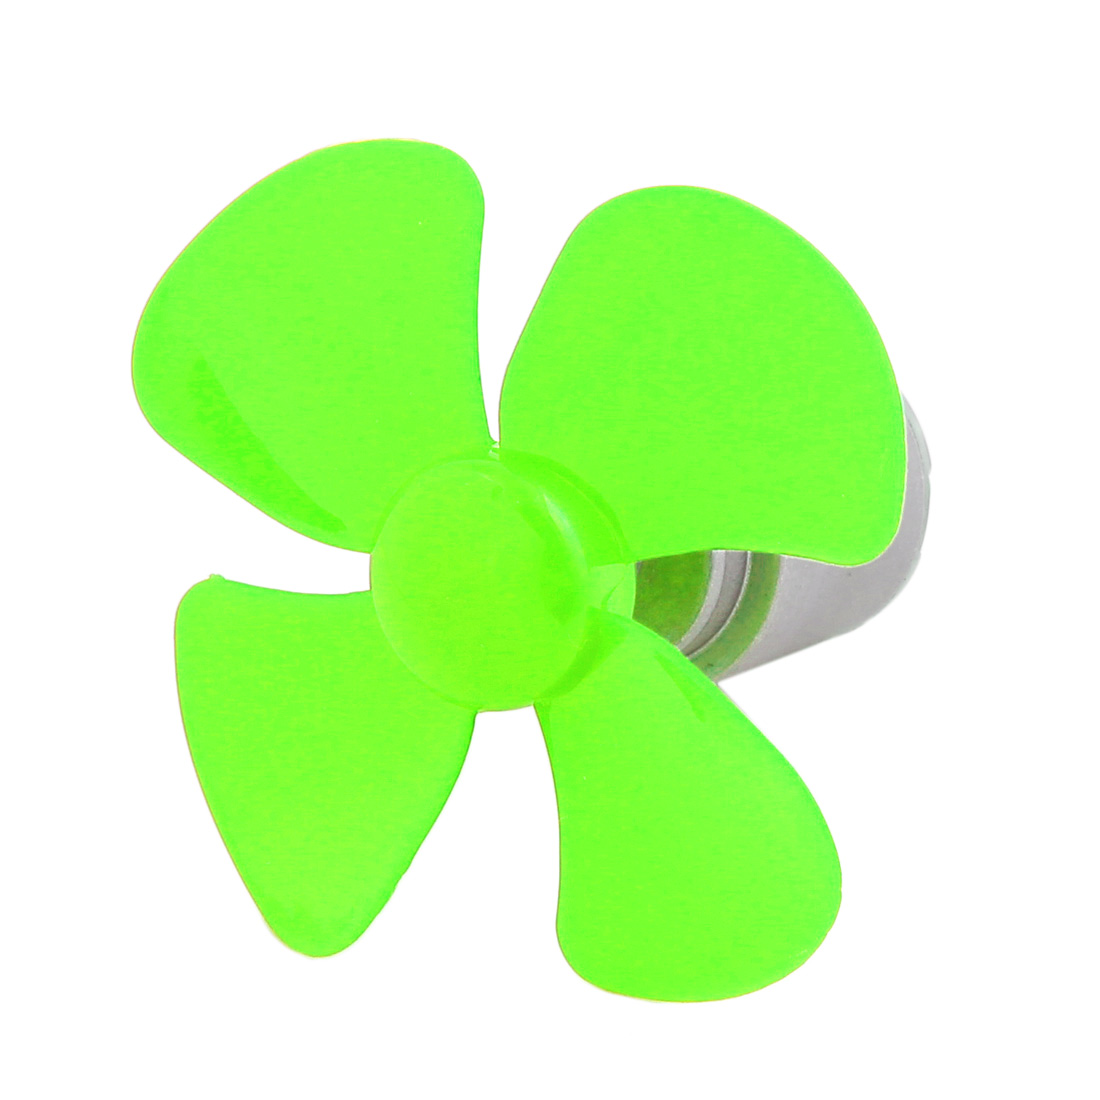 DC 3V 0.15A 11000RPM Green Strong Force Motor 4 Vanes 56mm Dia Propeller for RC Aircraft